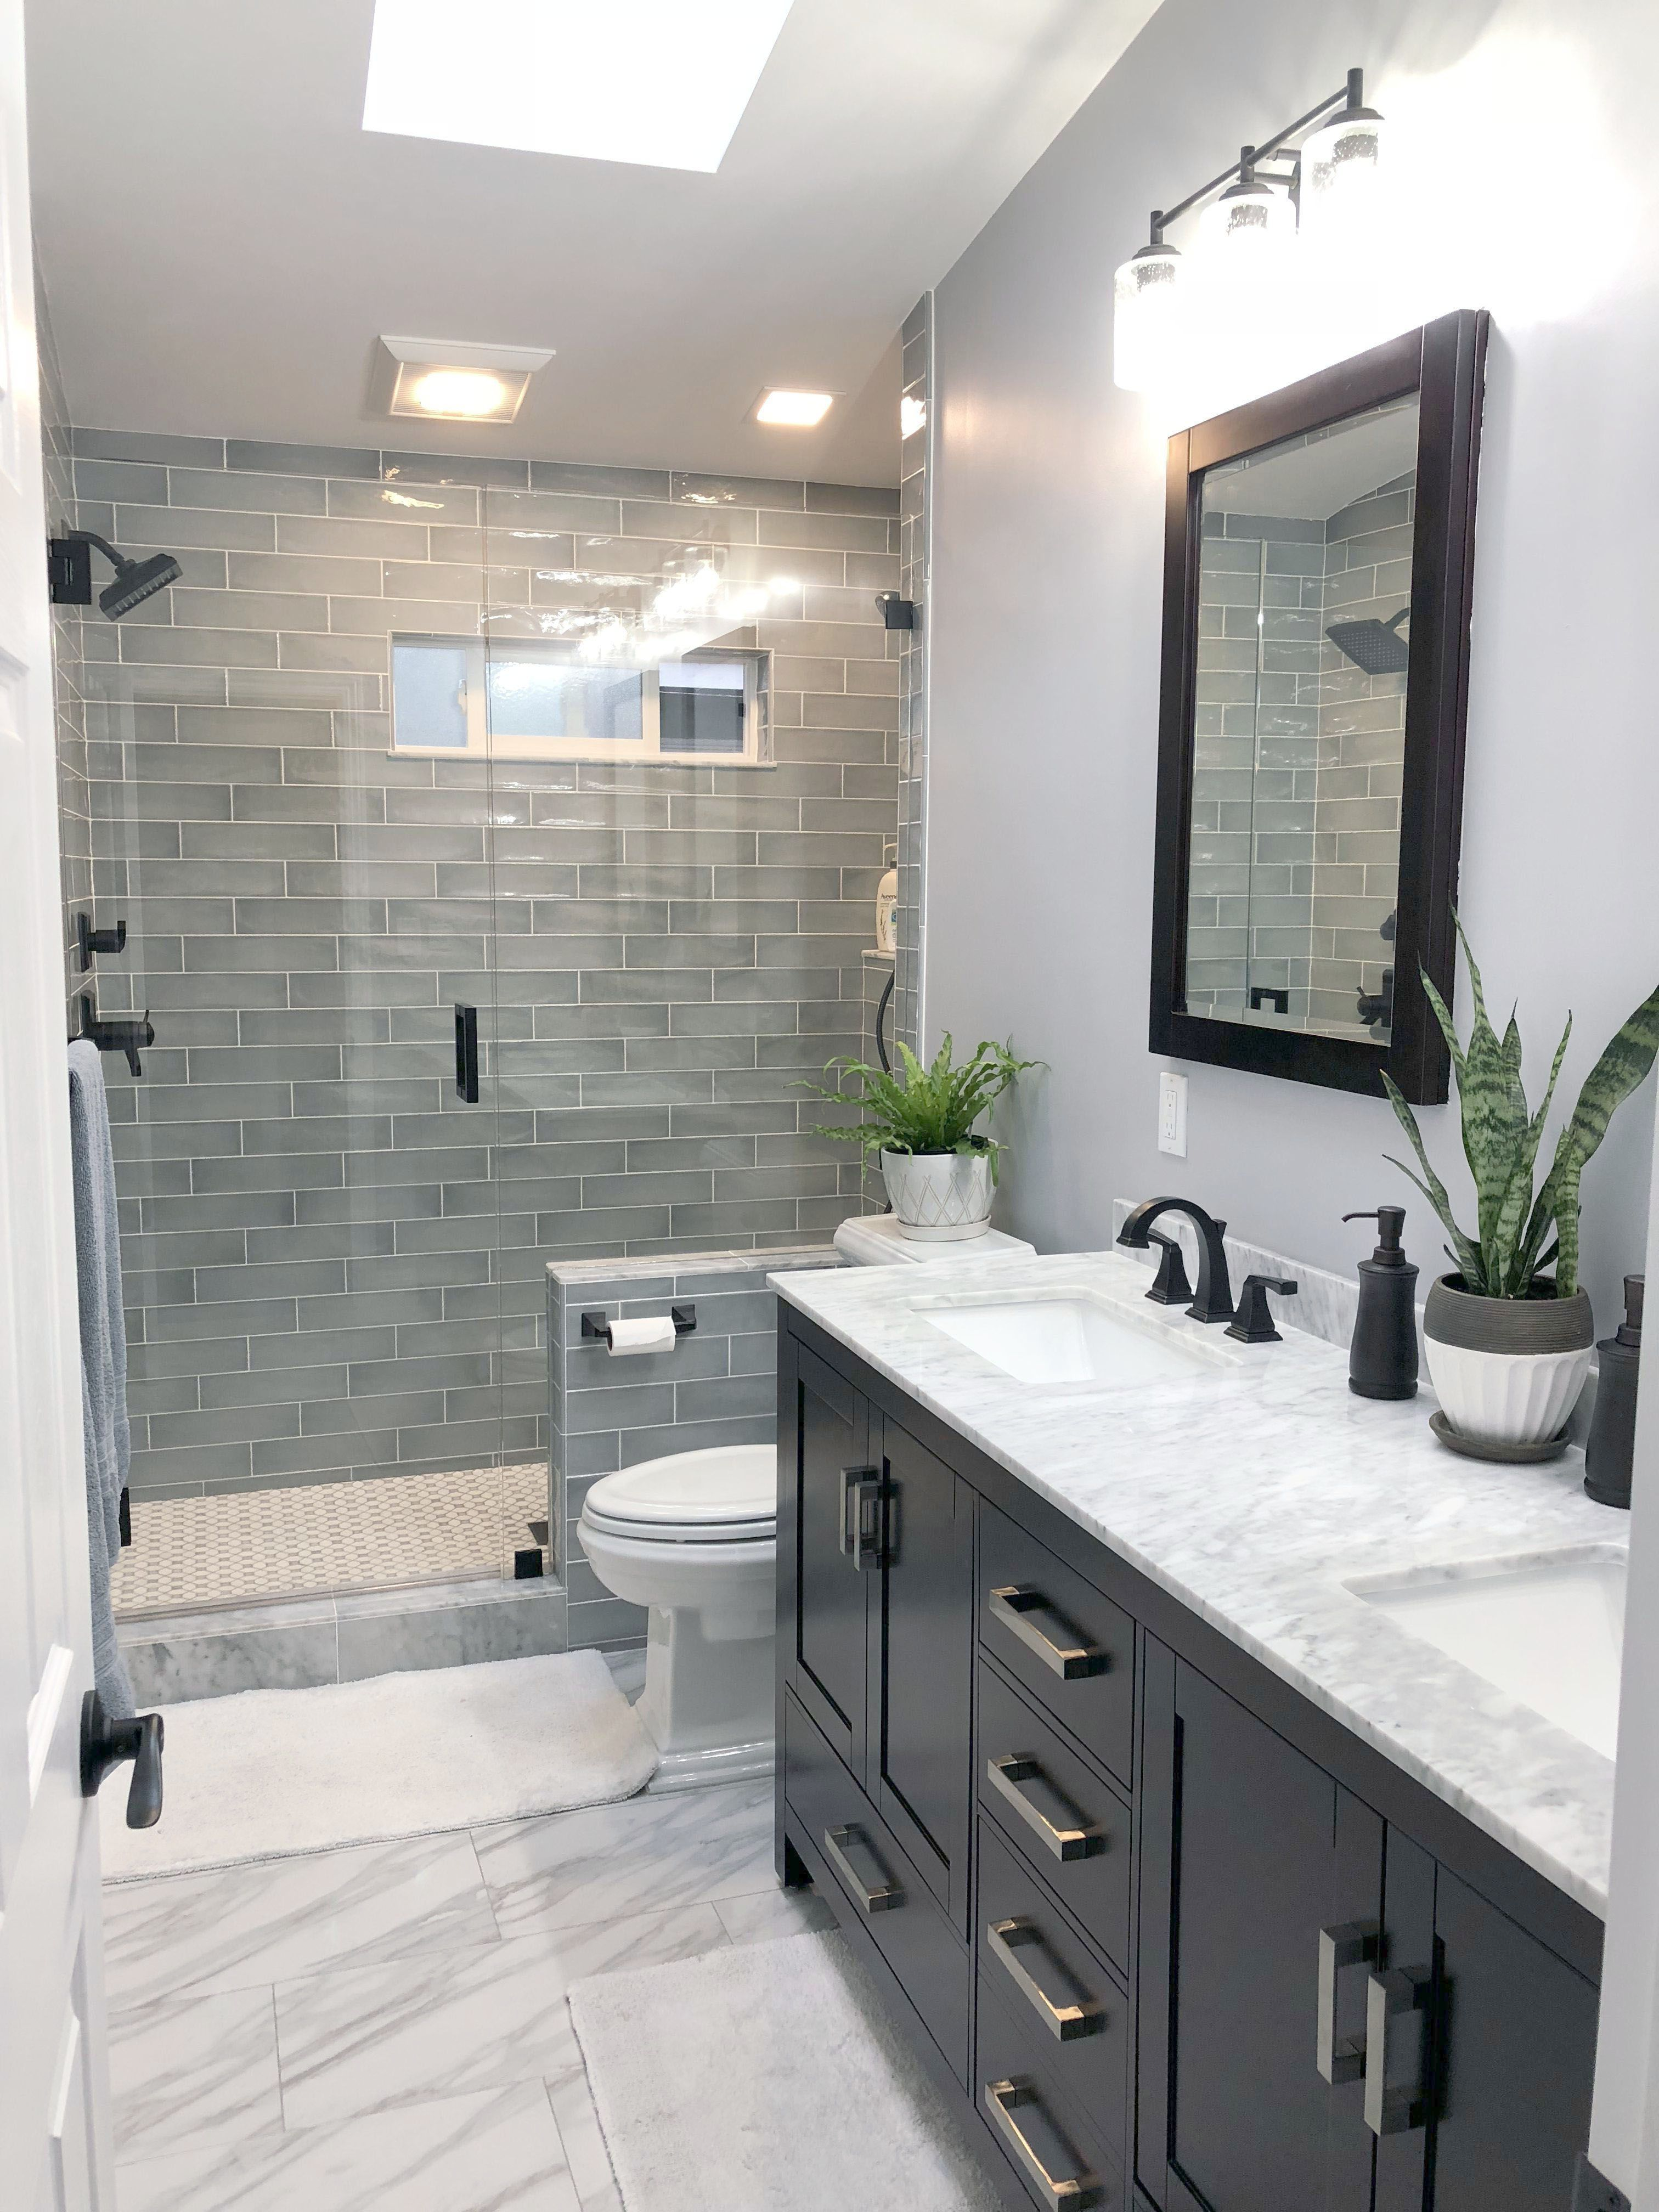 Bathroom Vanities Gray Color Into Bathroom Faucets Online Small Bathroom Remodel Bathroom Remodel Master Bathroom Tile Designs